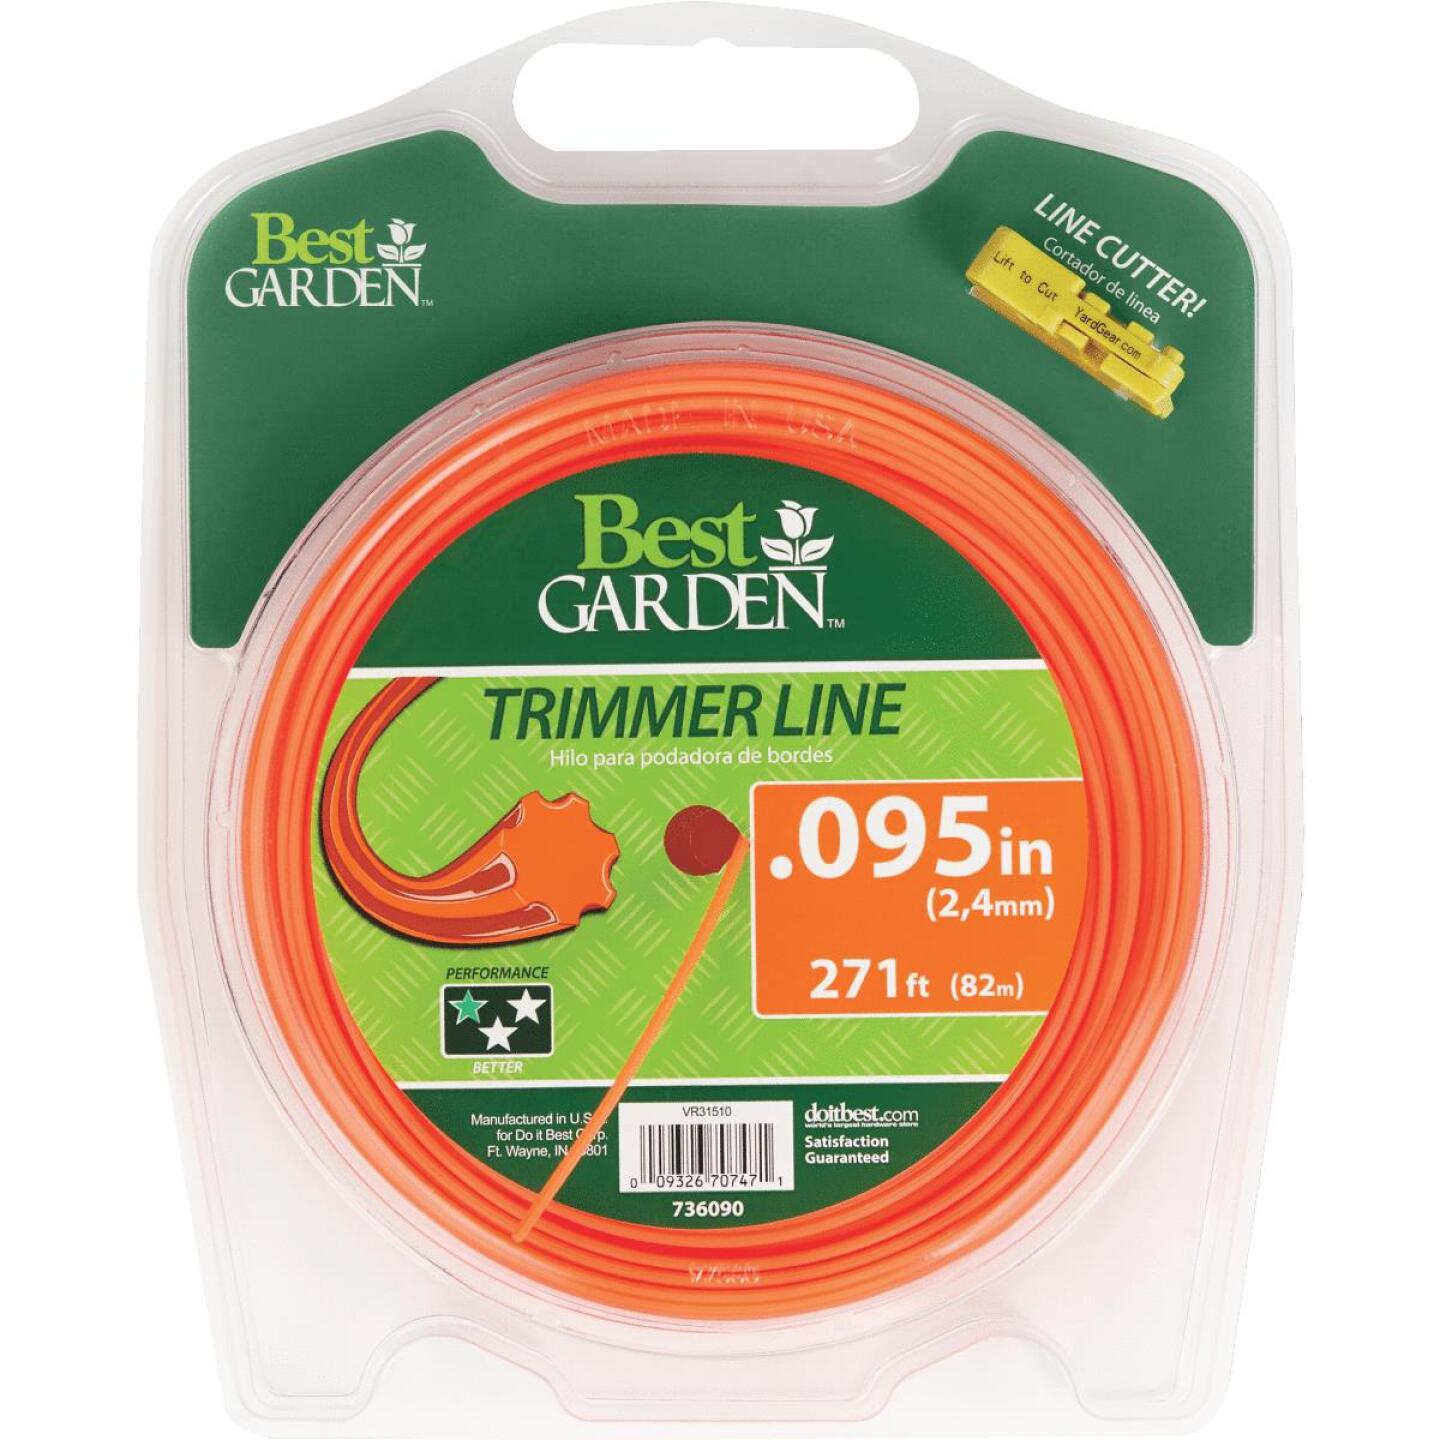 Best Garden 0.095 In. x 271 Ft. 7-Point Trimmer Line Image 1